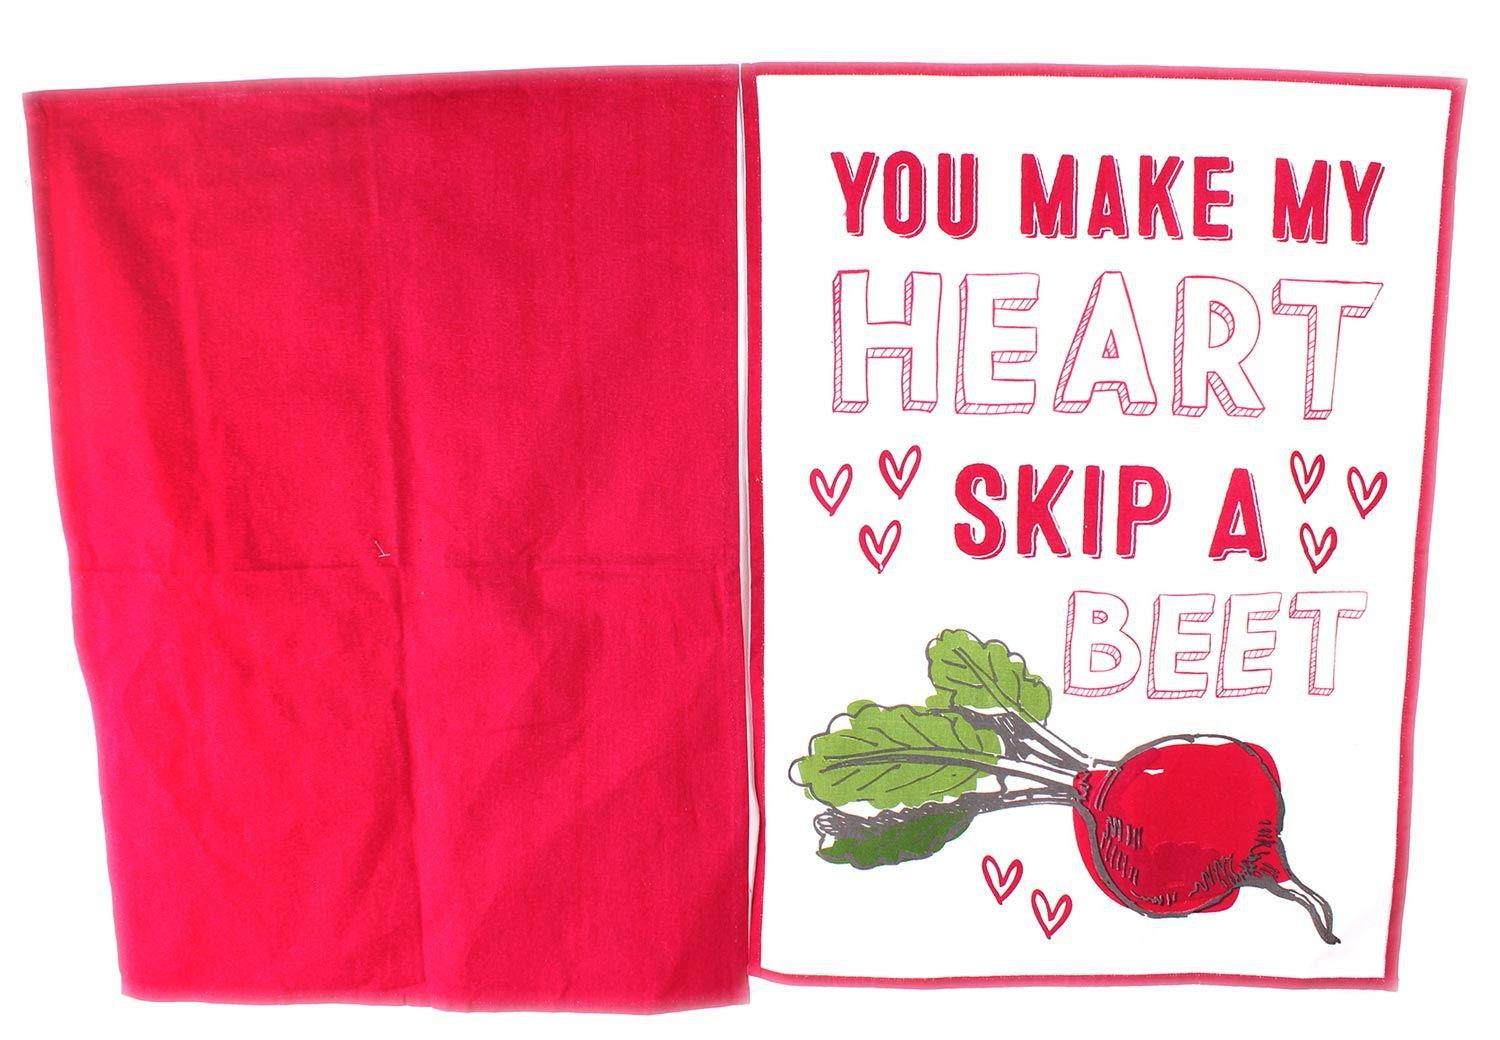 Astounding Heart Of The Home Set Of 2 Kitchen Tea Towels 100 Cotton You Make My Heart Skip A Beet Download Free Architecture Designs Sospemadebymaigaardcom